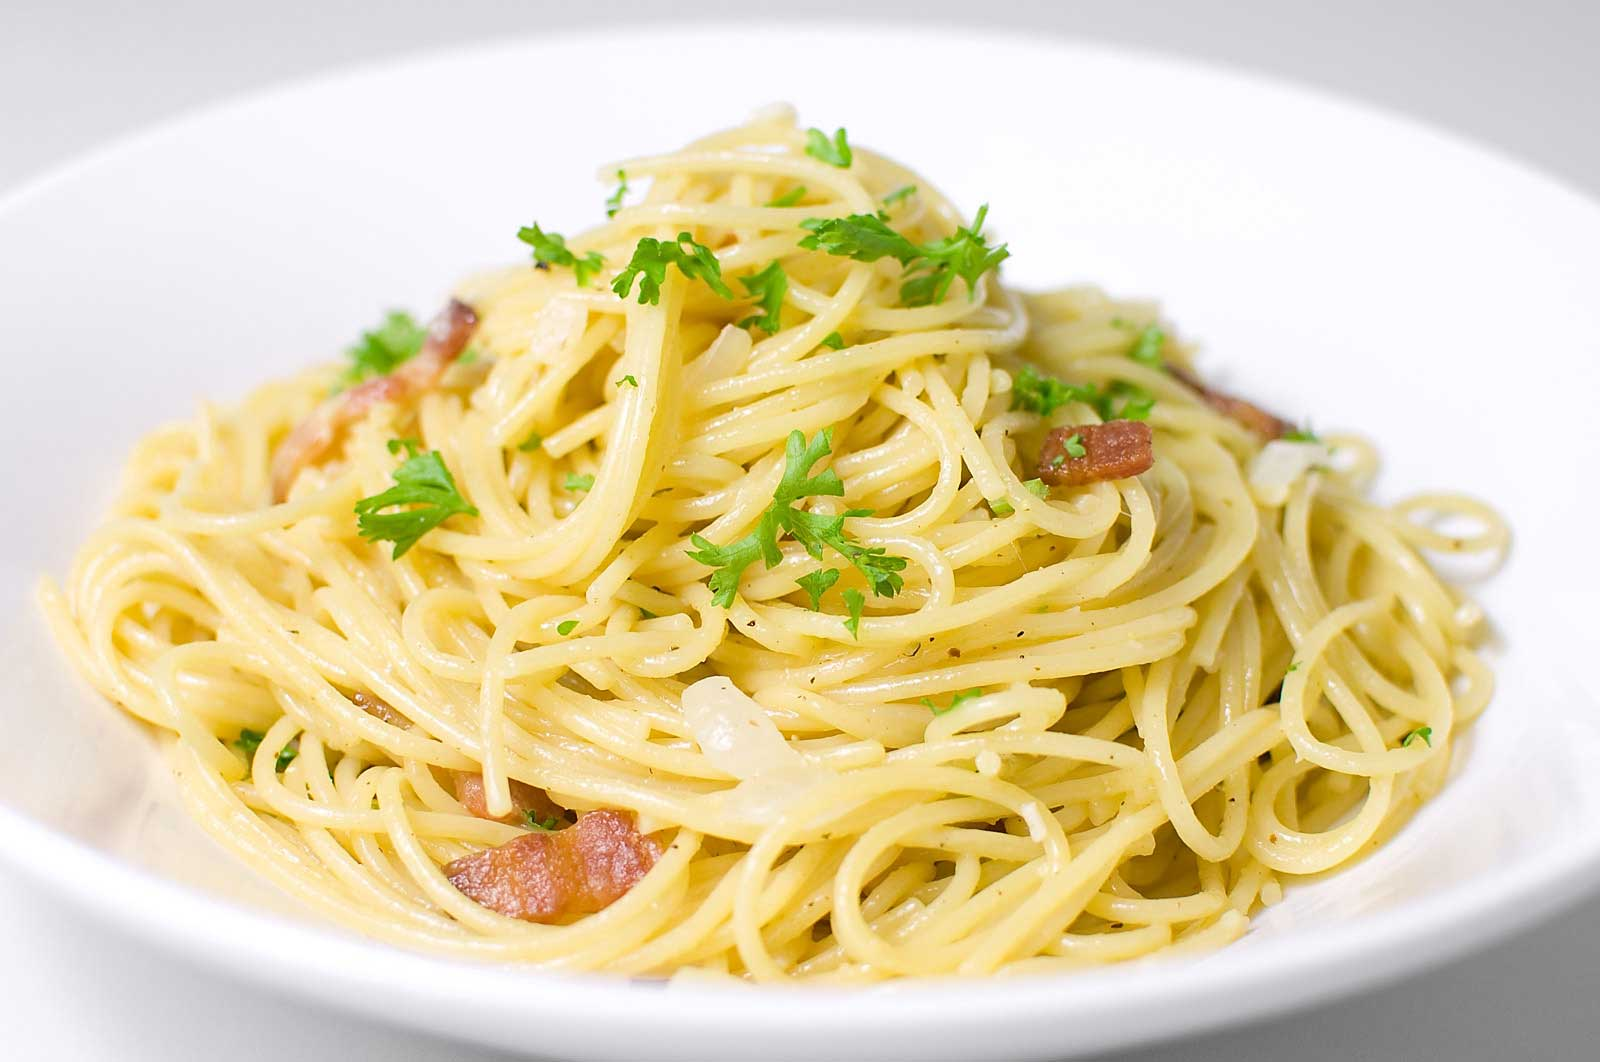 Pasta Carbonara Recipes Wiki Fandom Powered By Wikia